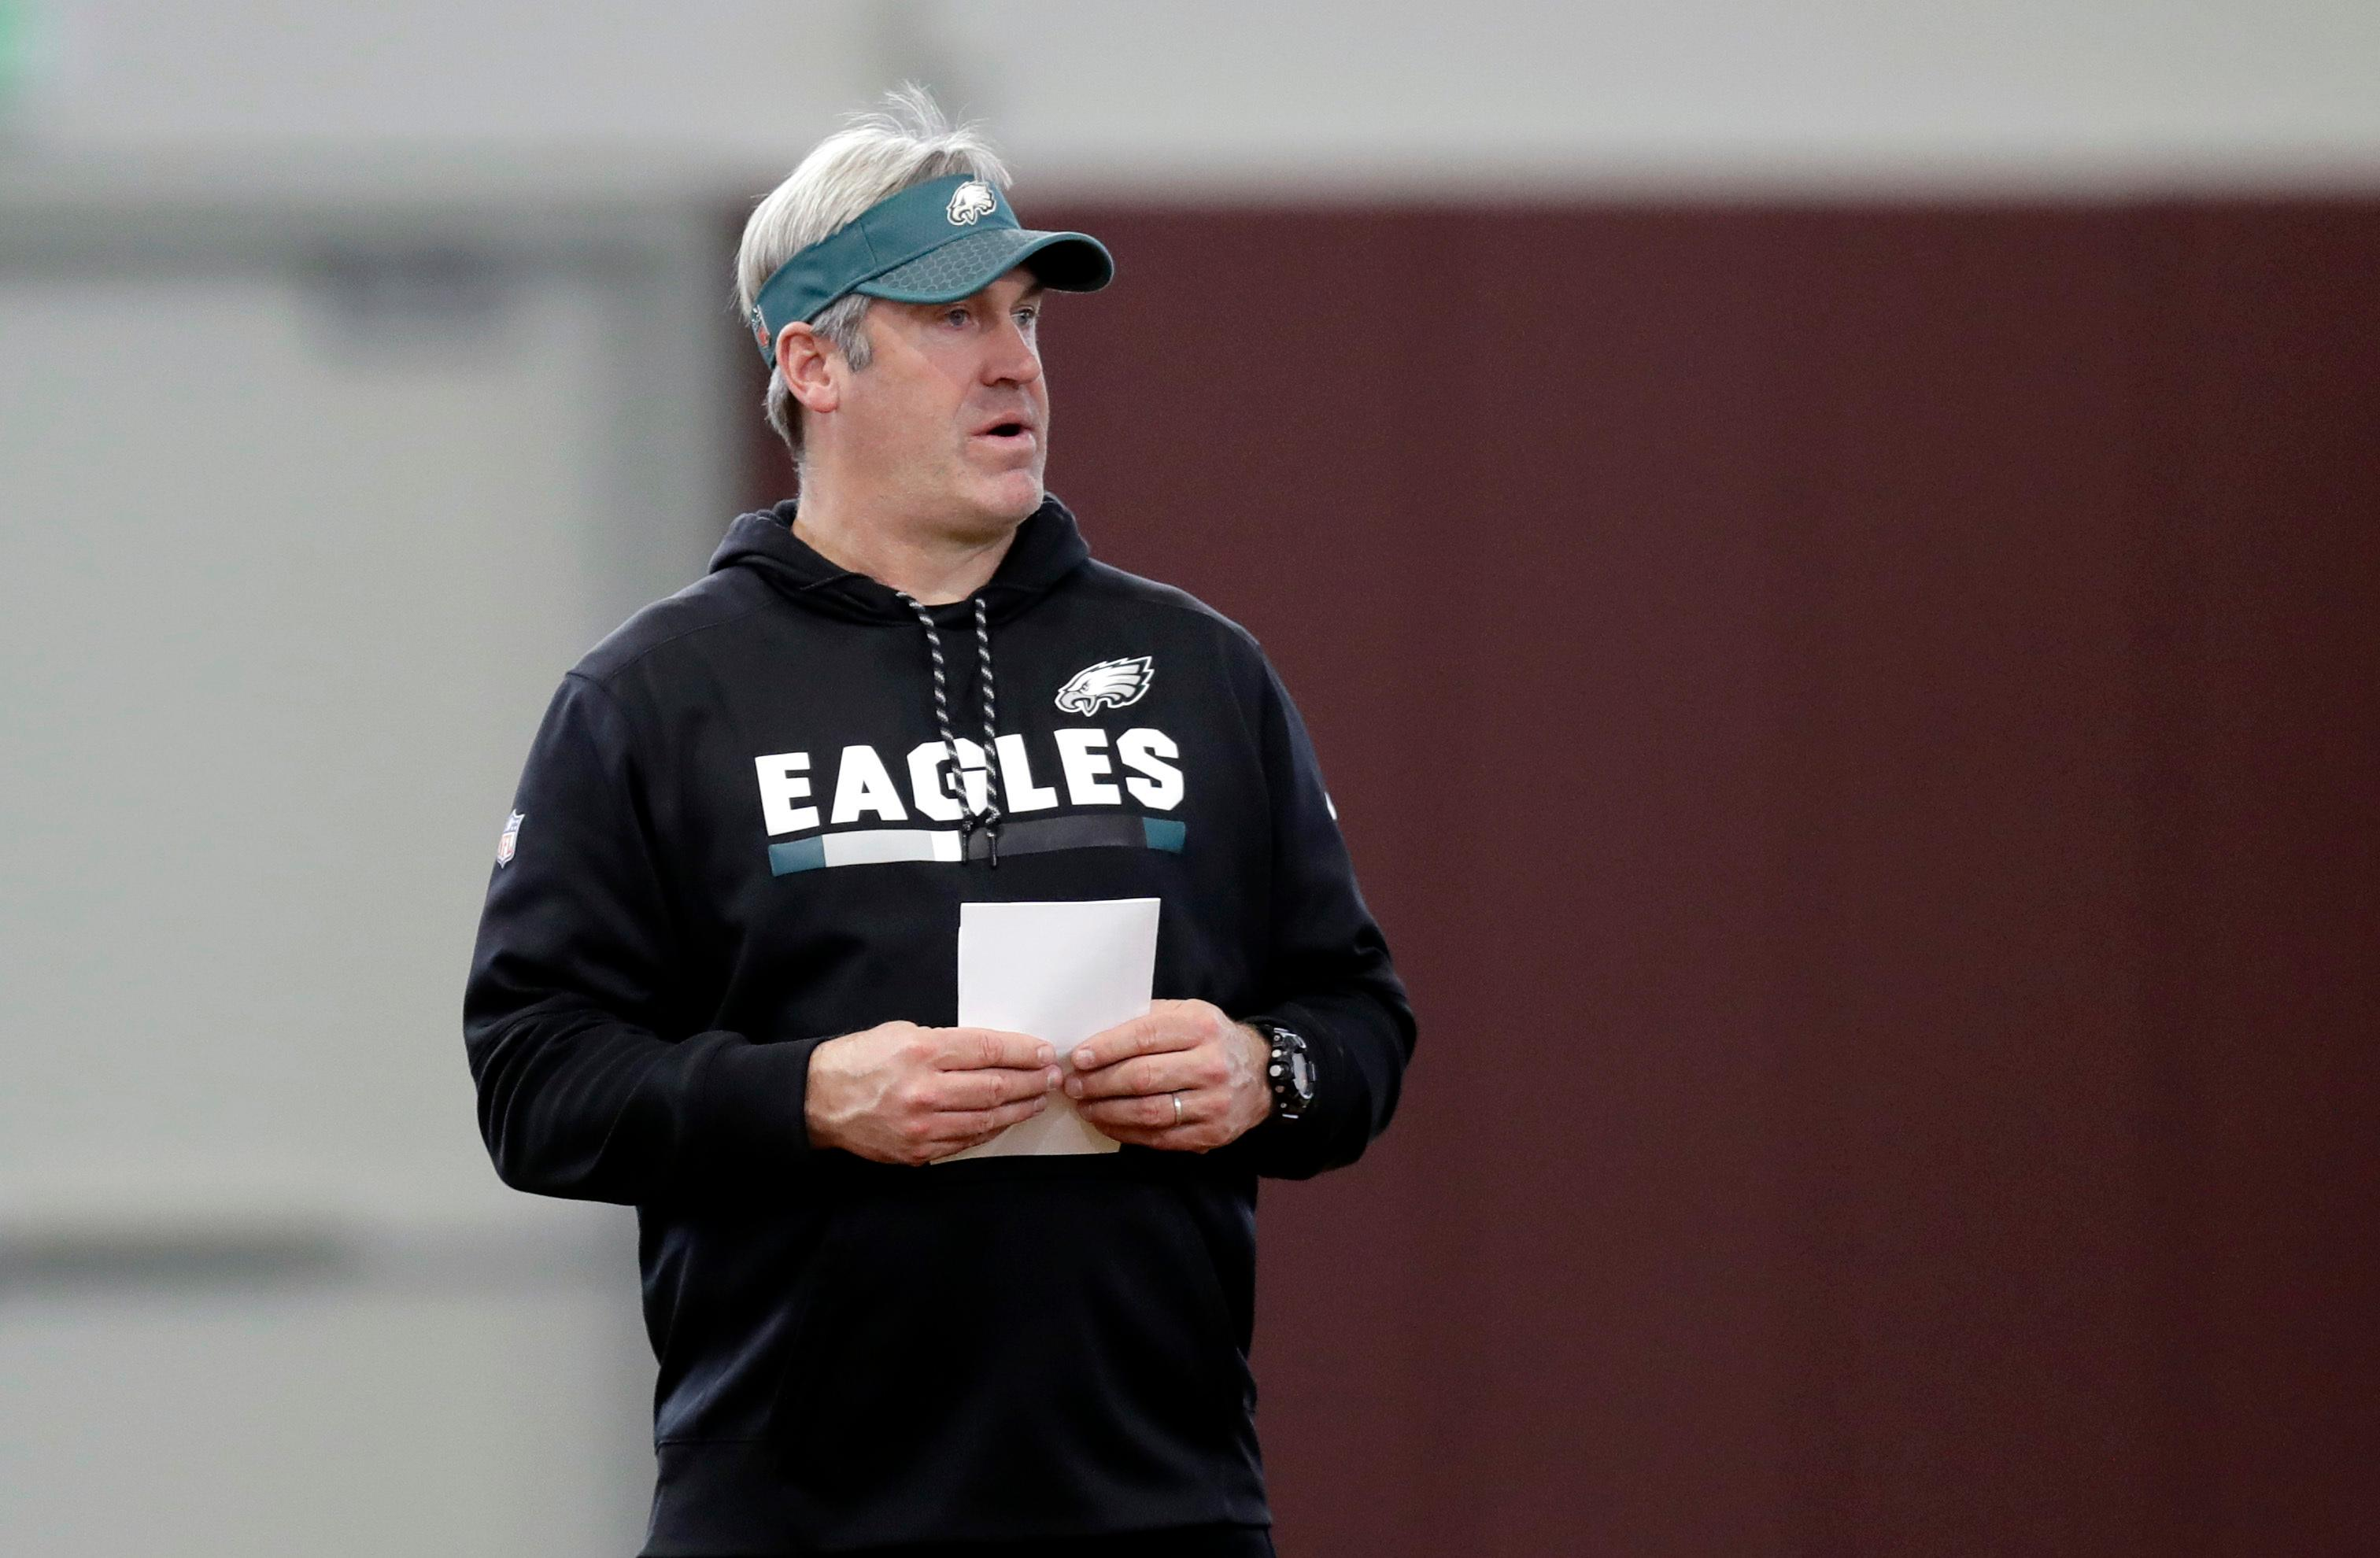 Philadelphia Eagles head coach Doug Pederson watches the team's practice for the NFL Super Bowl 52 football game Friday, Feb. 2, 2018, in Minneapolis. Philadelphia is scheduled to face the New England Patriots Sunday. (AP Photo/Eric Gay)